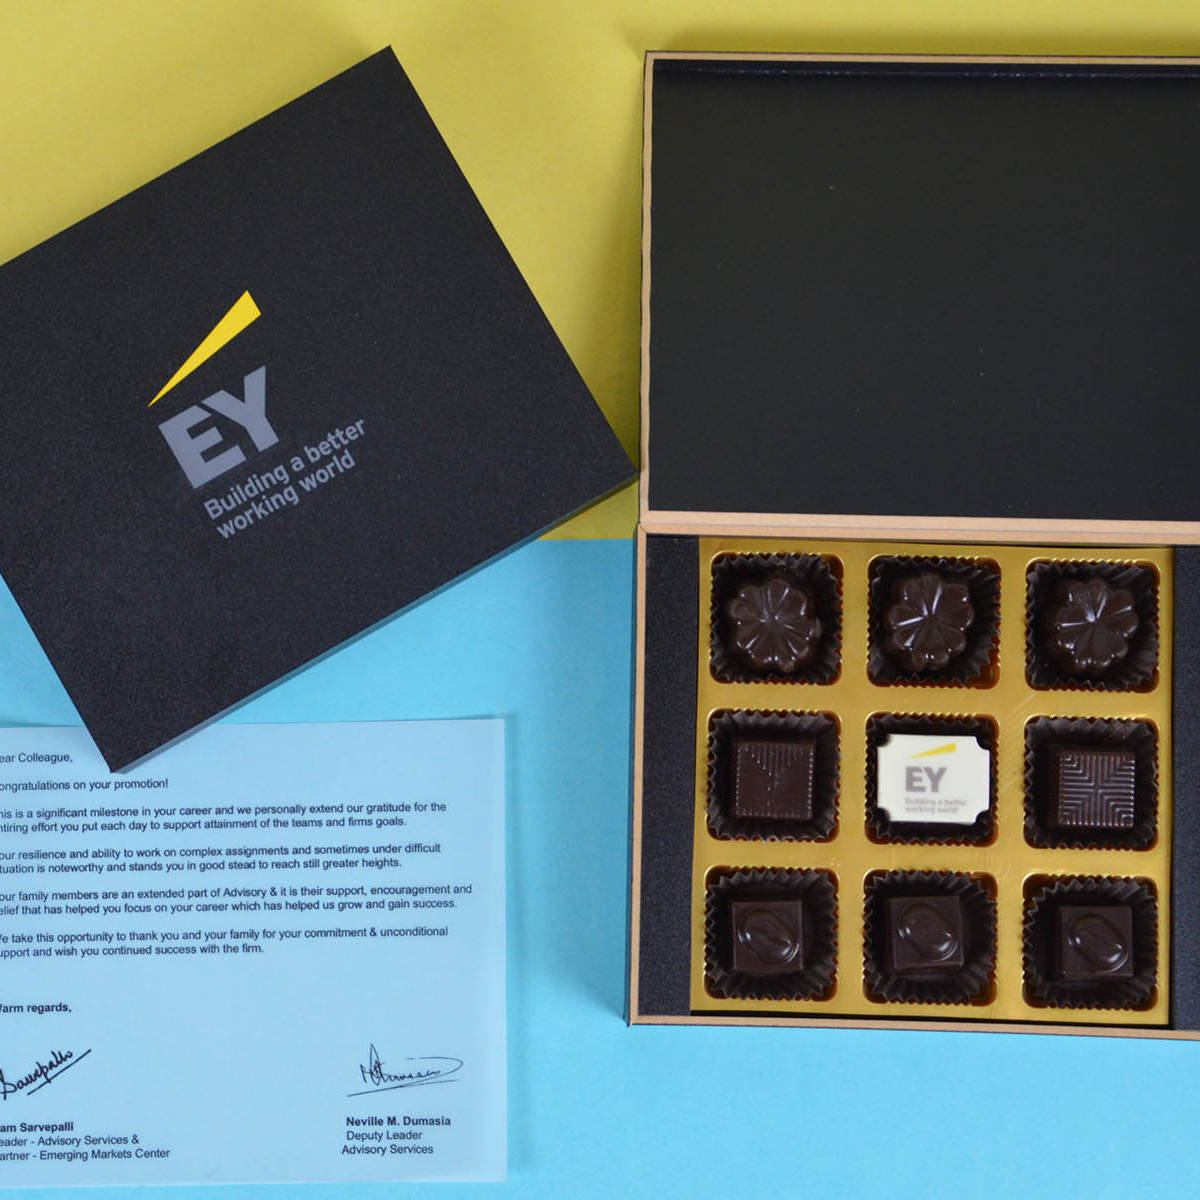 Get 100 Corporate Gift Ideas | Corporate Diwali Gifts Ideas – CHOCOCRAFT